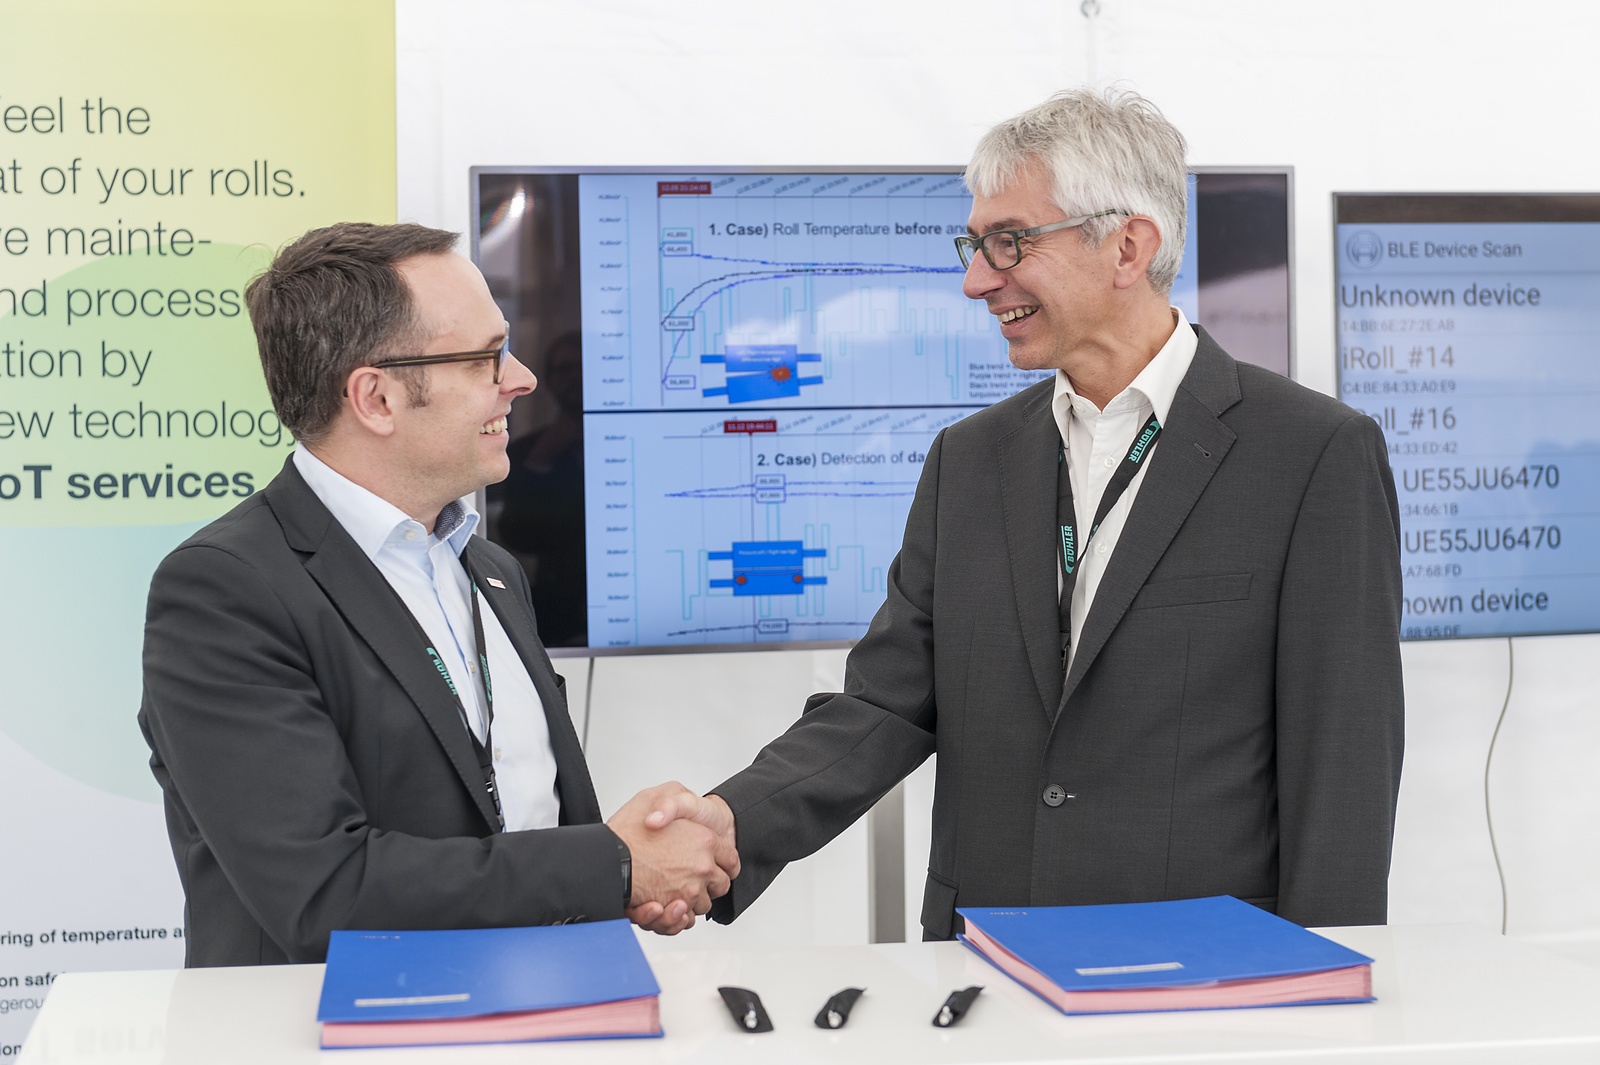 Research cooperation between Bosch and Bühler - Bosch Media Service